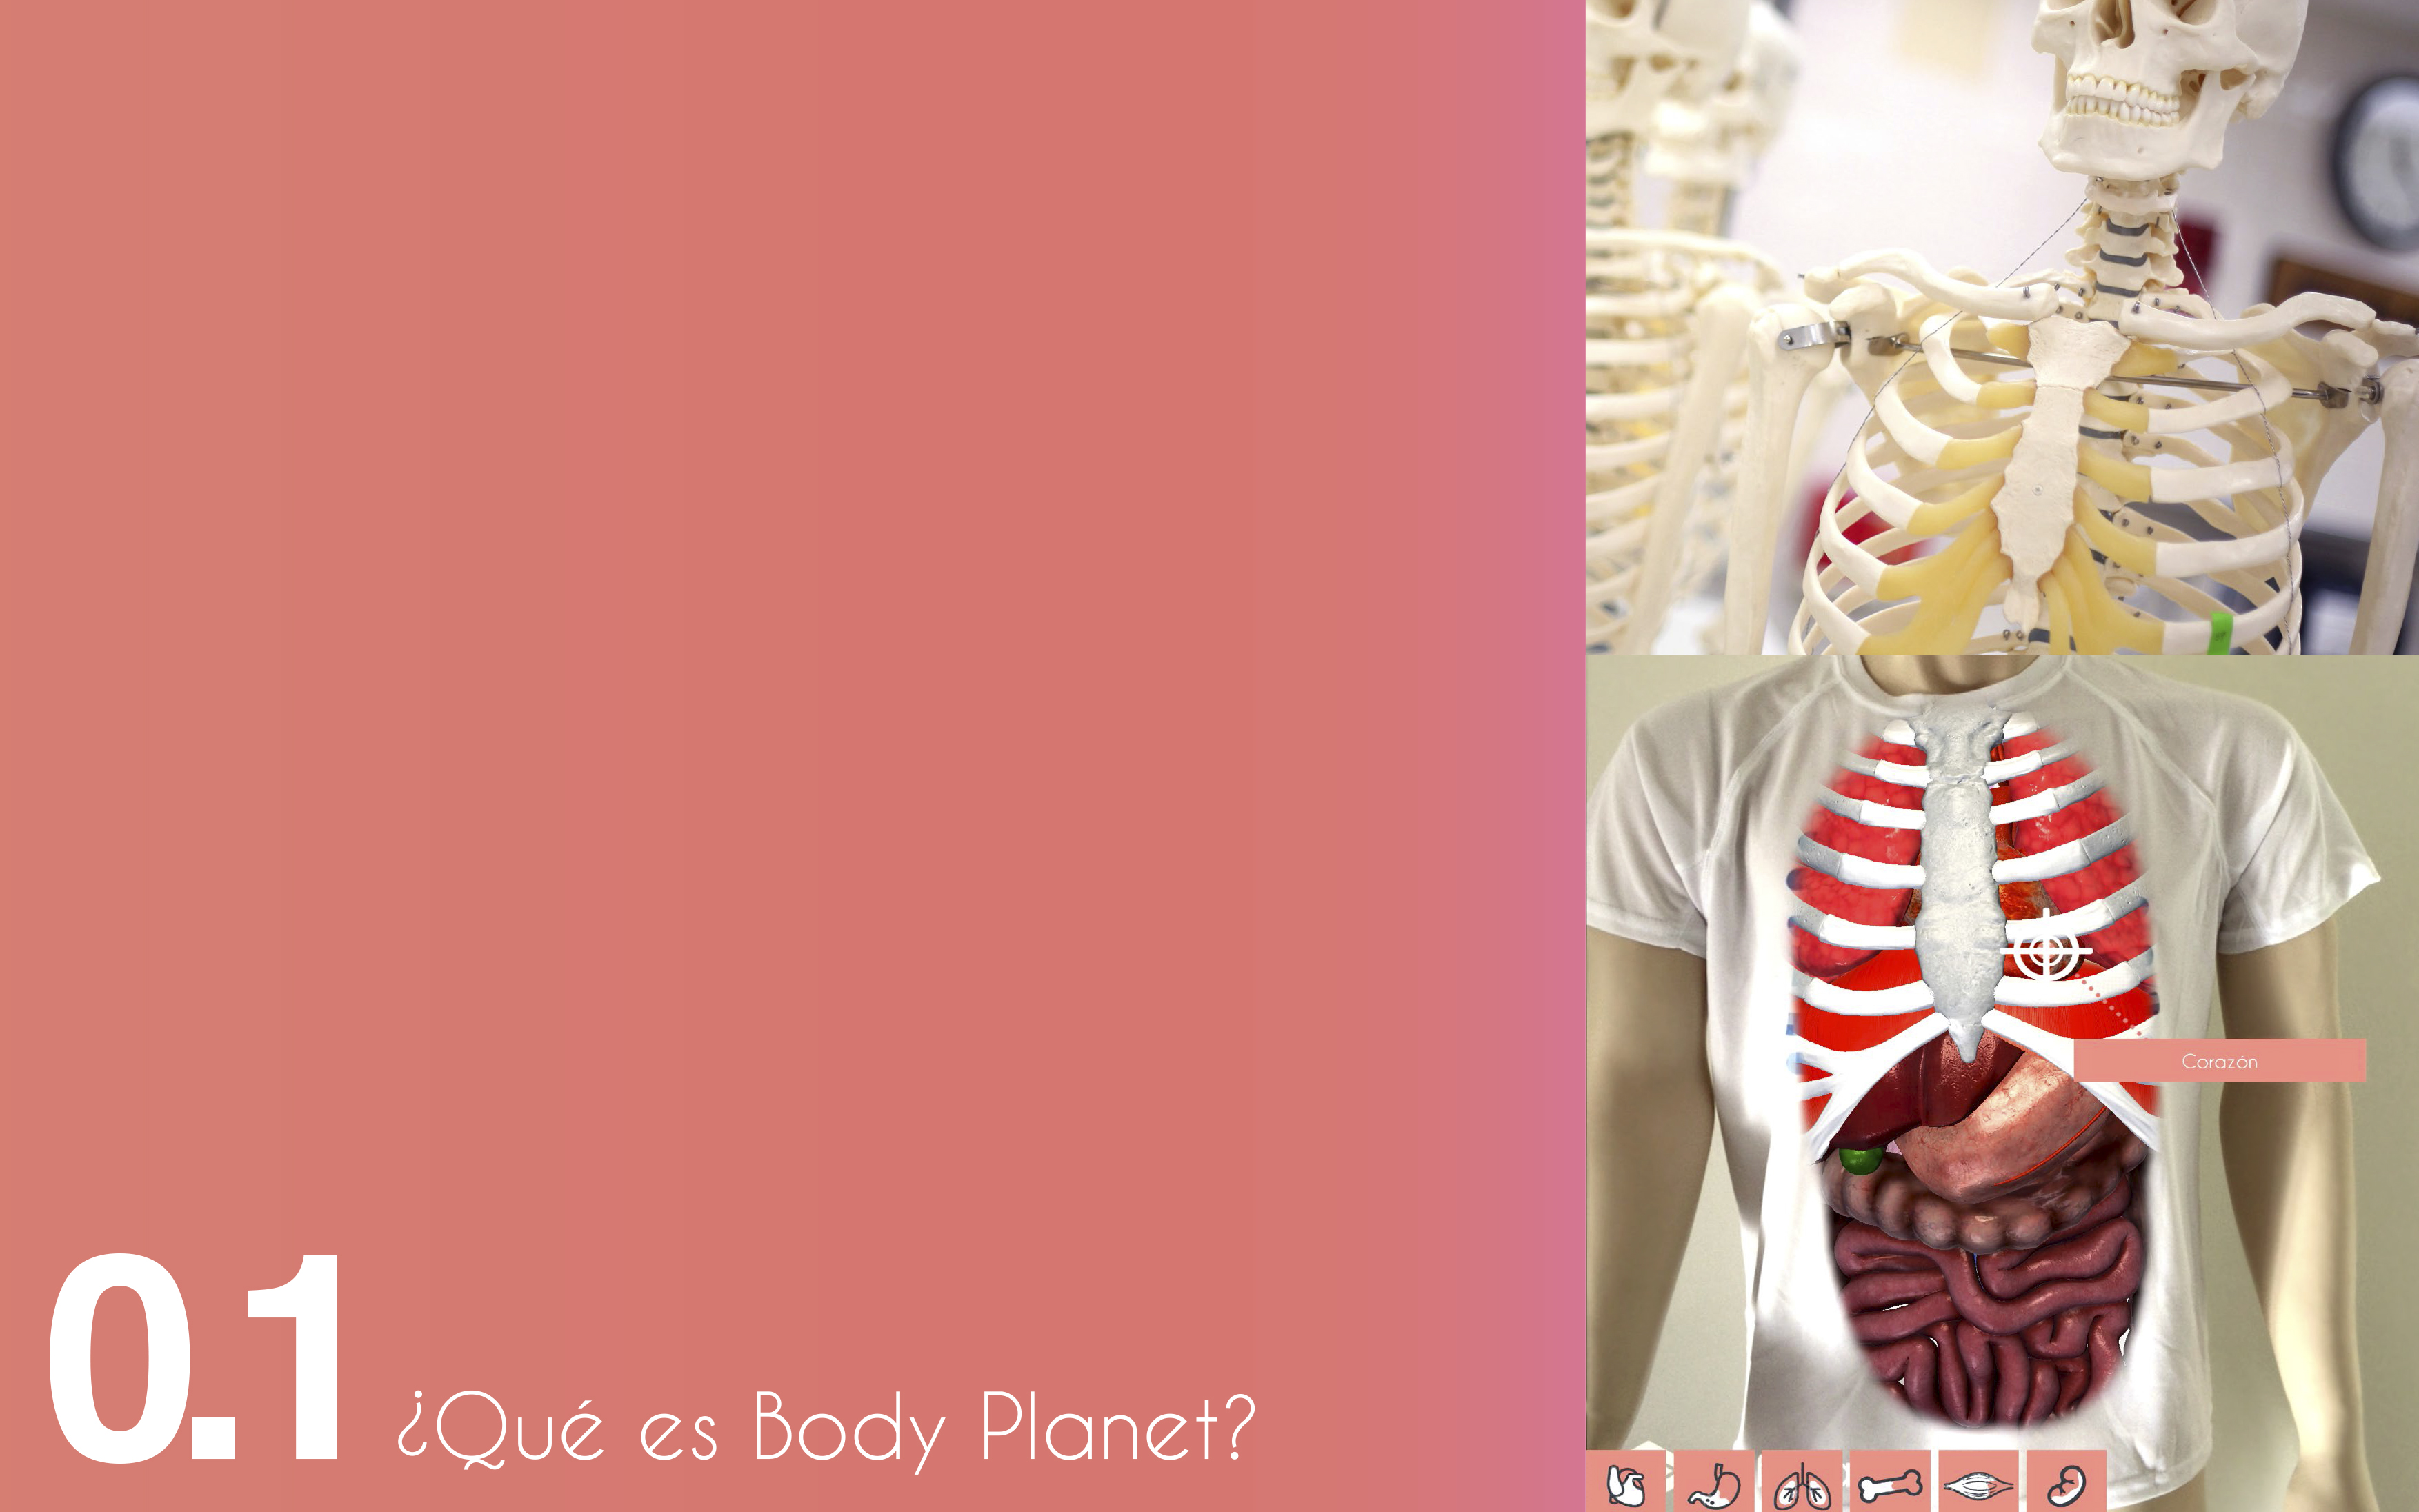 Body planet aula educación